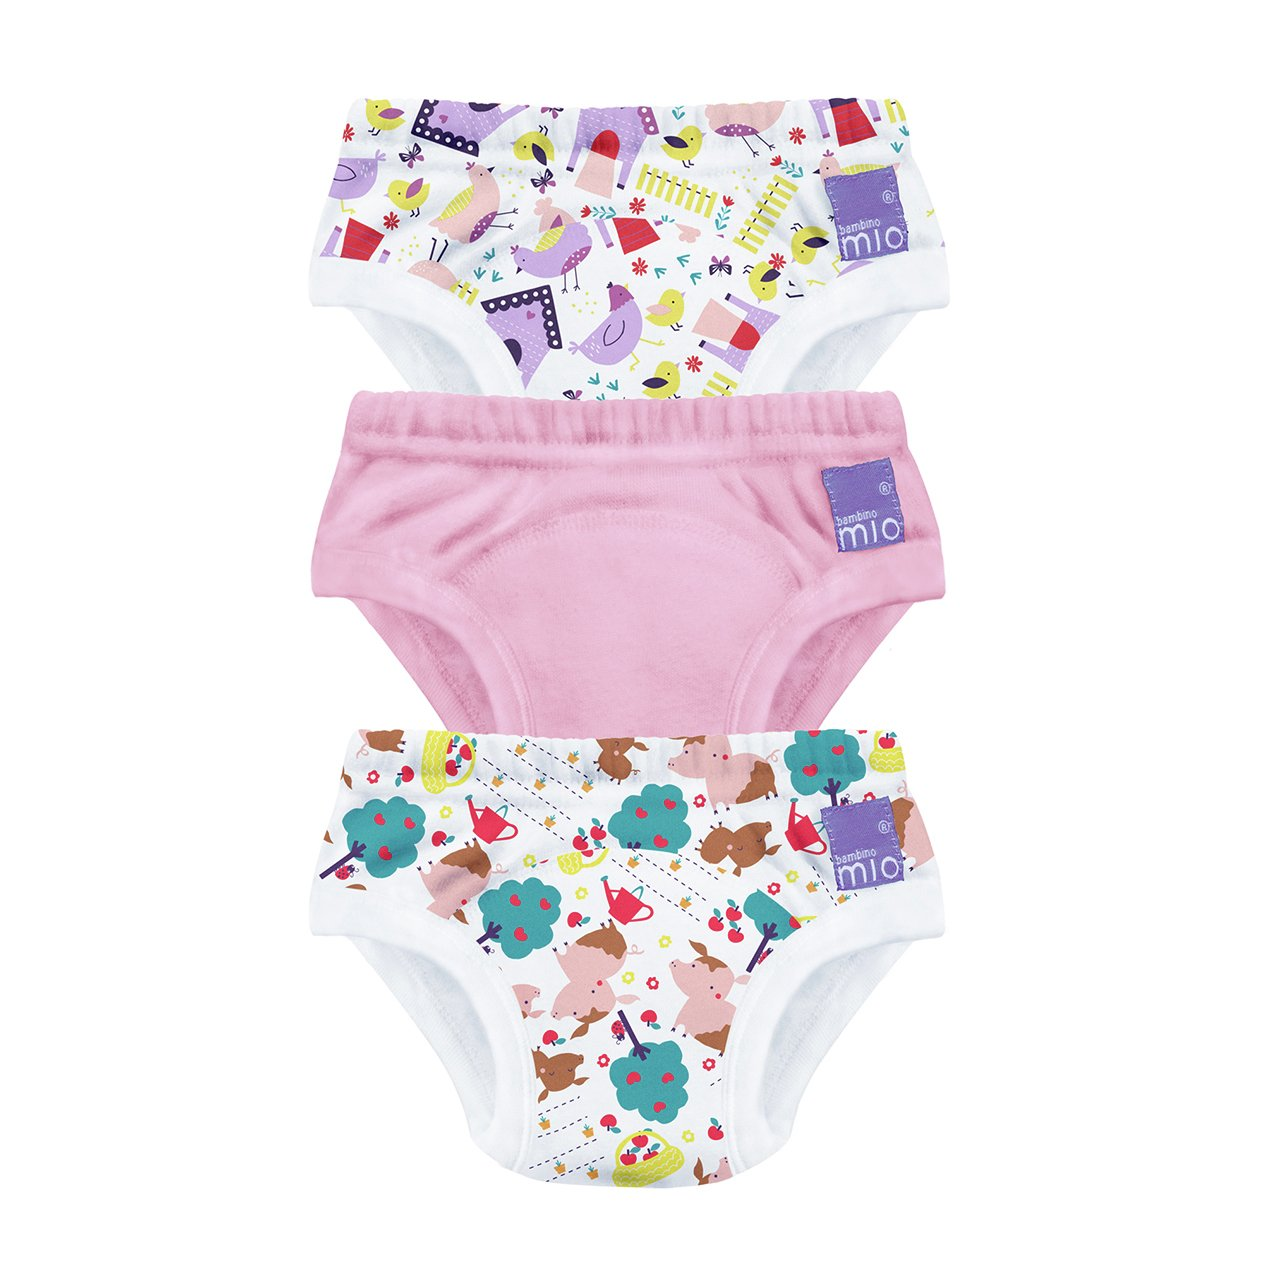 Bambino Mio Potty Training Pants 2-3 years - 3 Pack